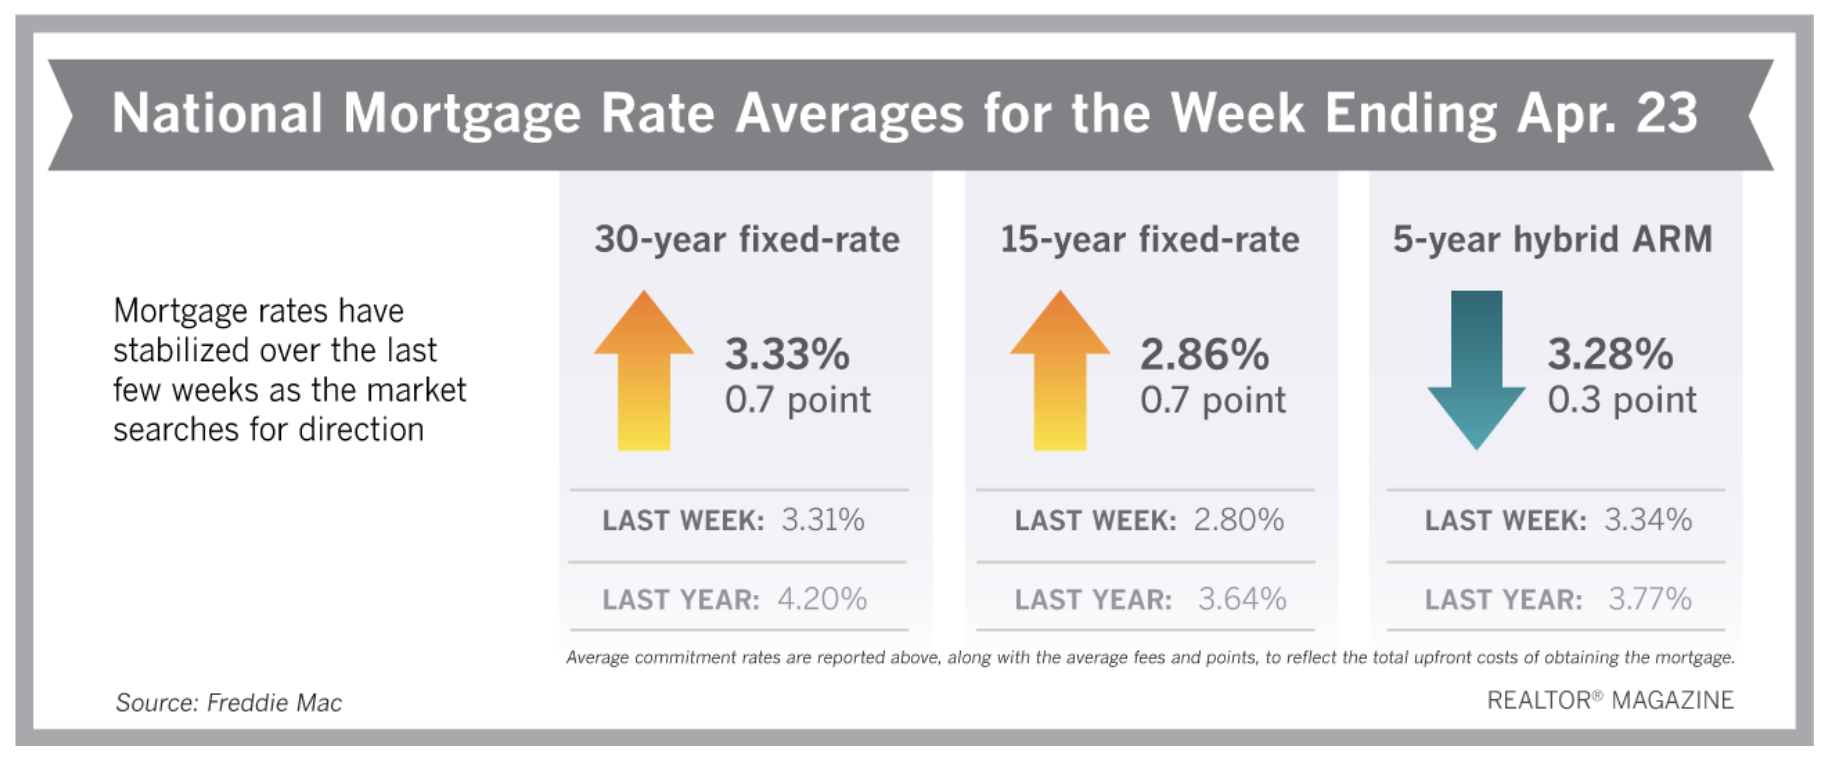 Mortgage Rates Settle Near Historical Lows